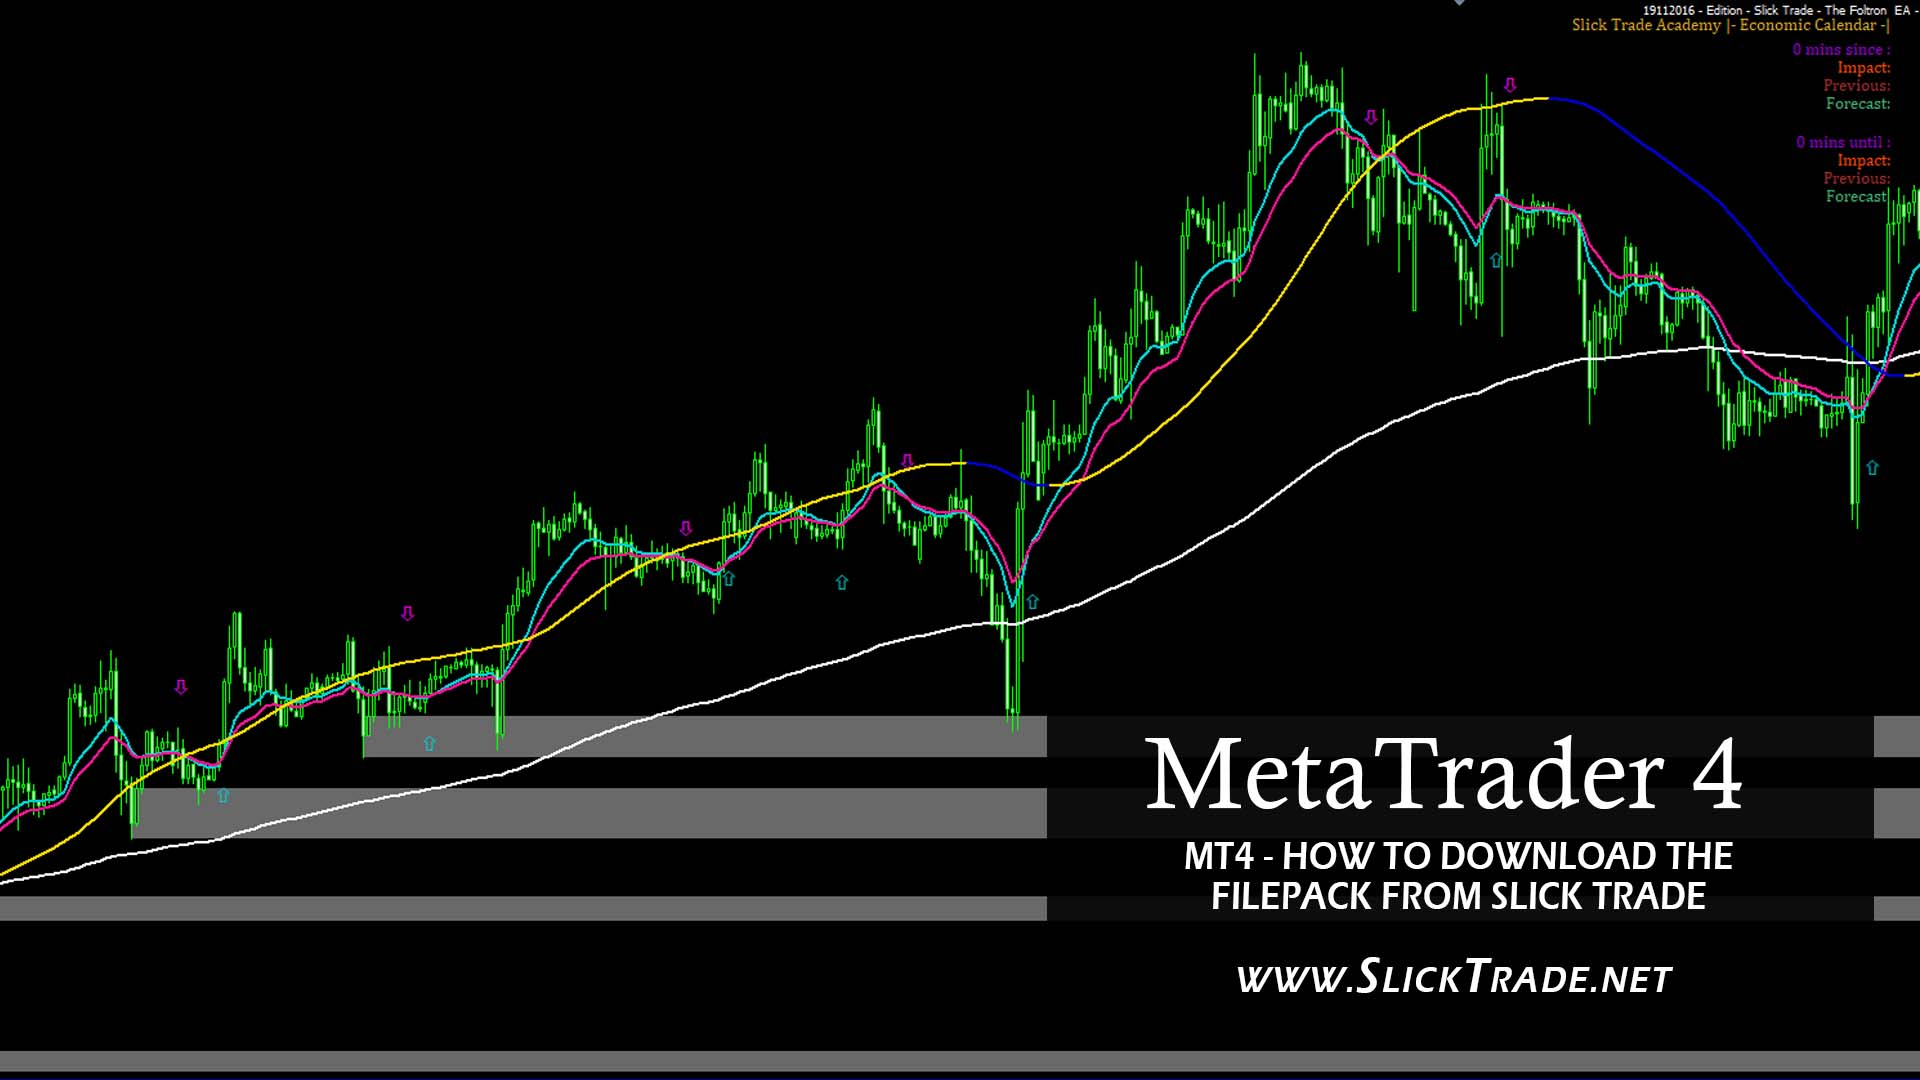 MetaTrader 4 - MT4 - How To Install The File Pack